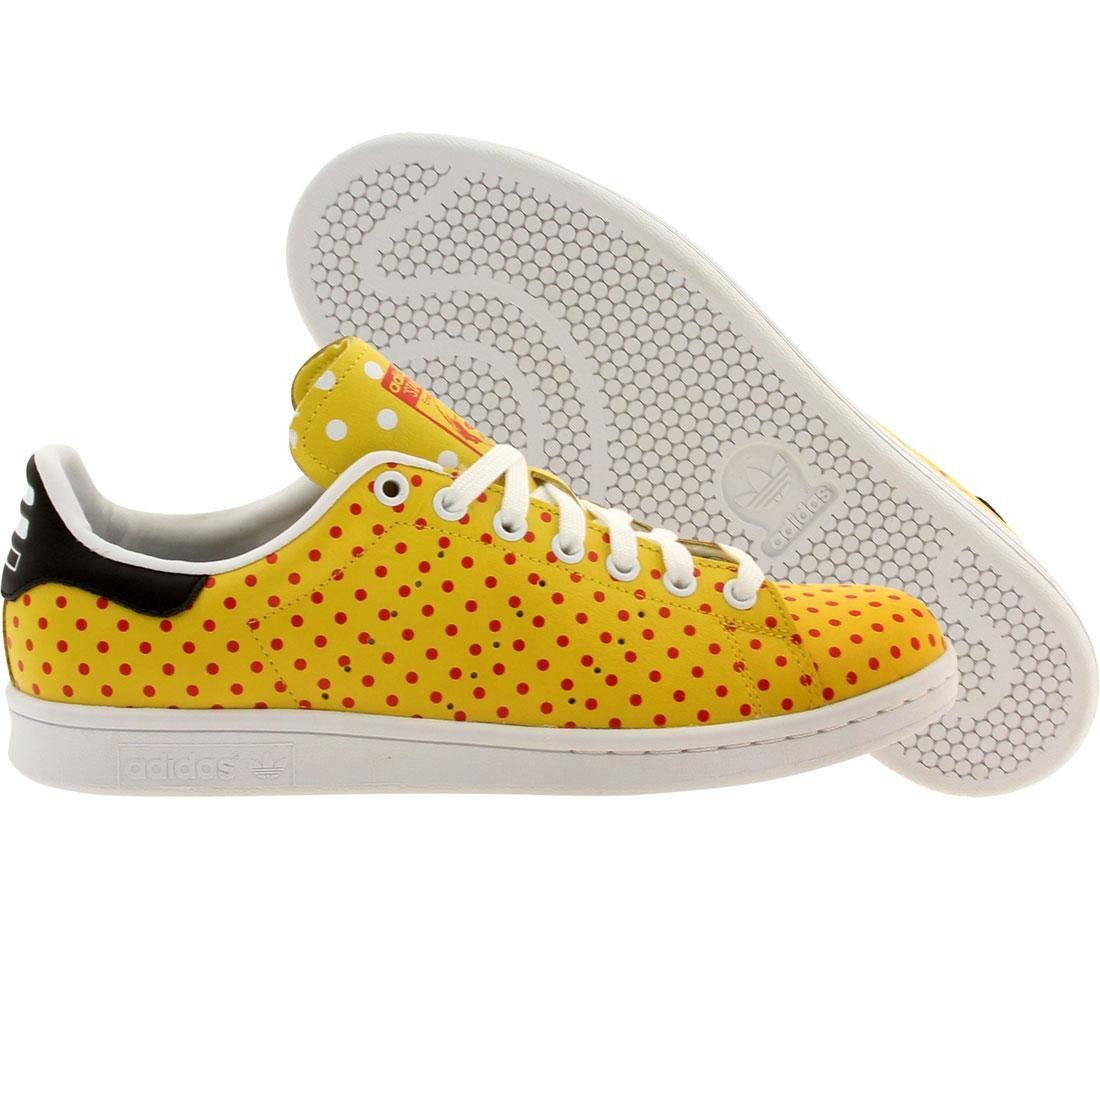 Adidas X Pharrell Williams Uomini Stan Smith (Polka Dot Pack